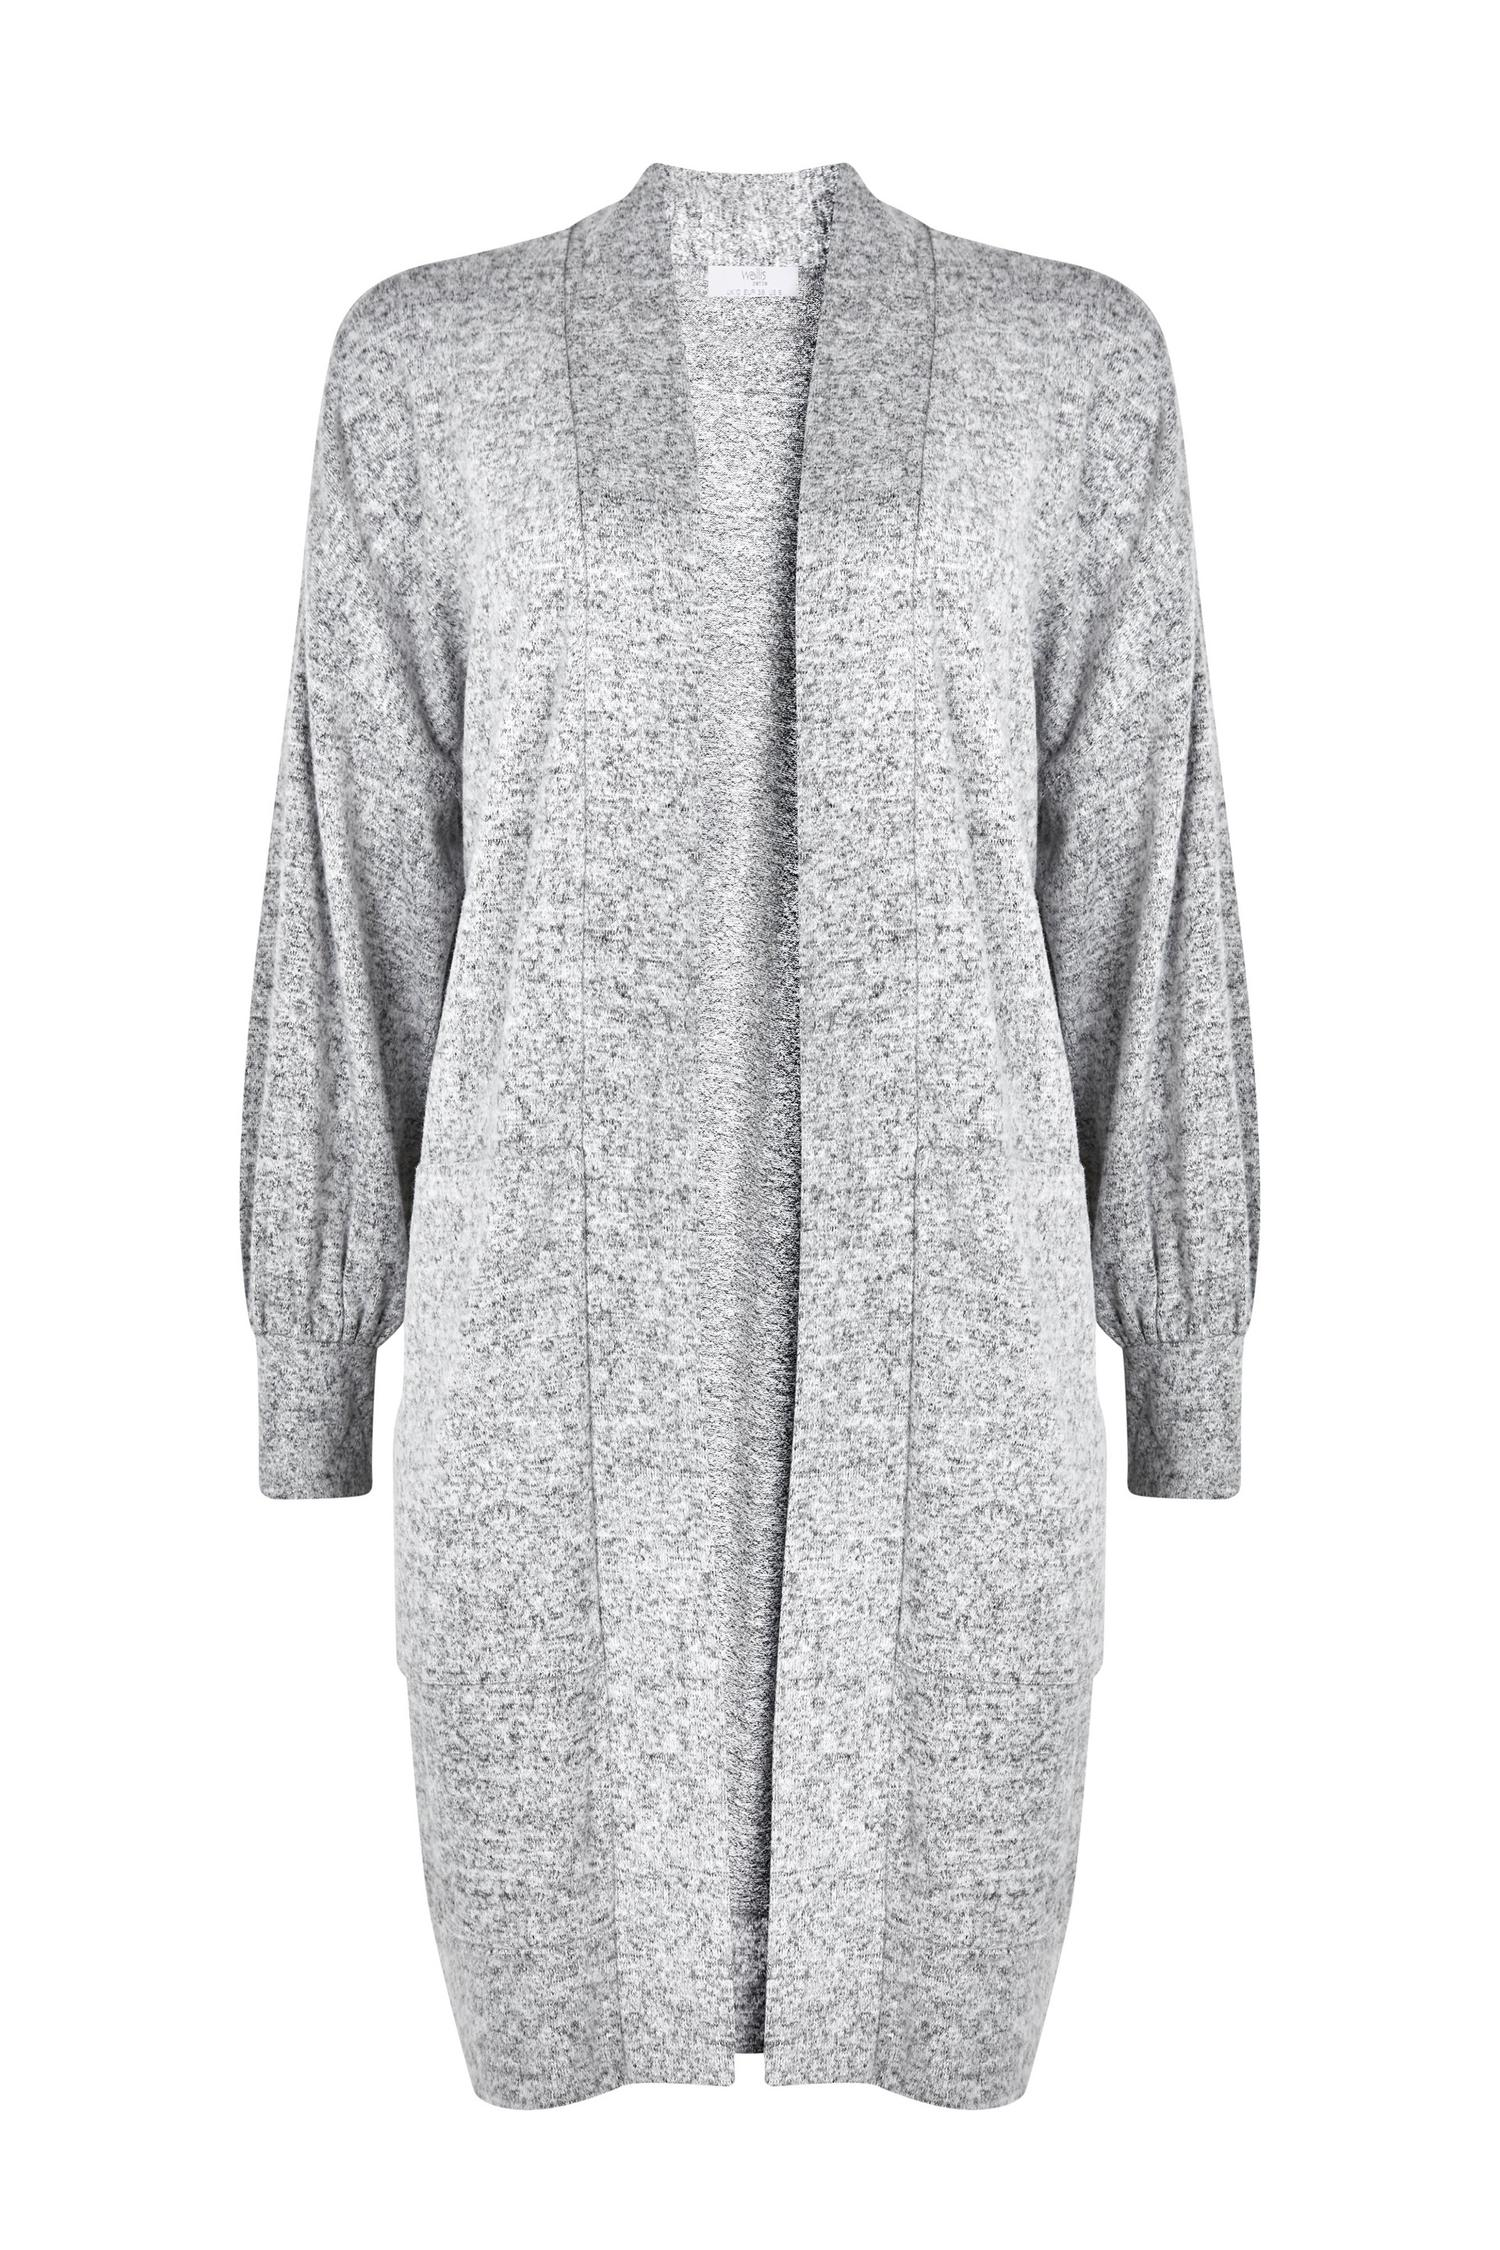 131 PETITE Grey Soft Relaxed Longline Cardigan image number 4